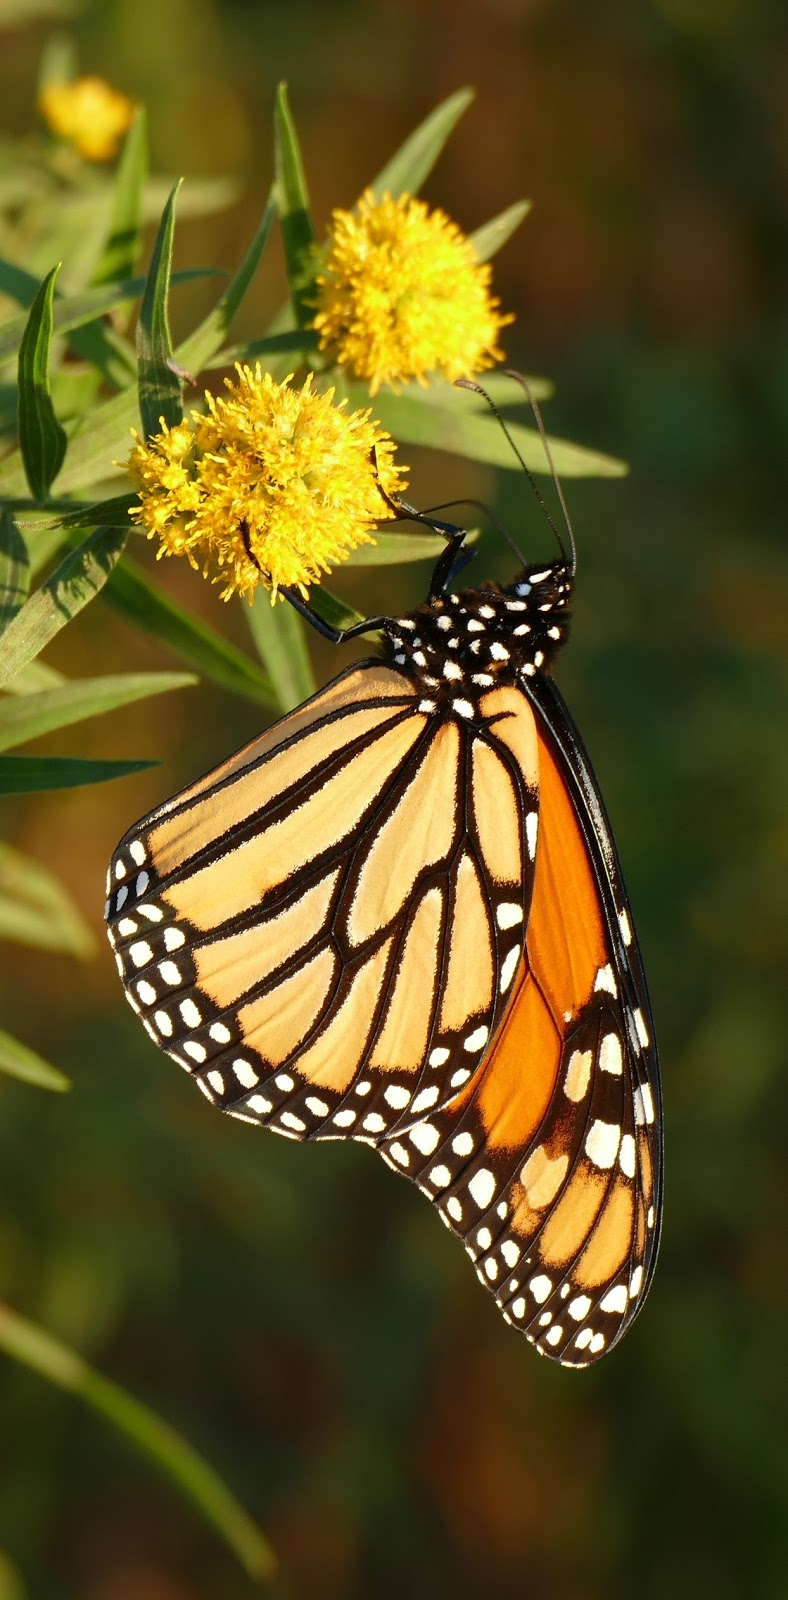 A close shot of a monarch butterfly.